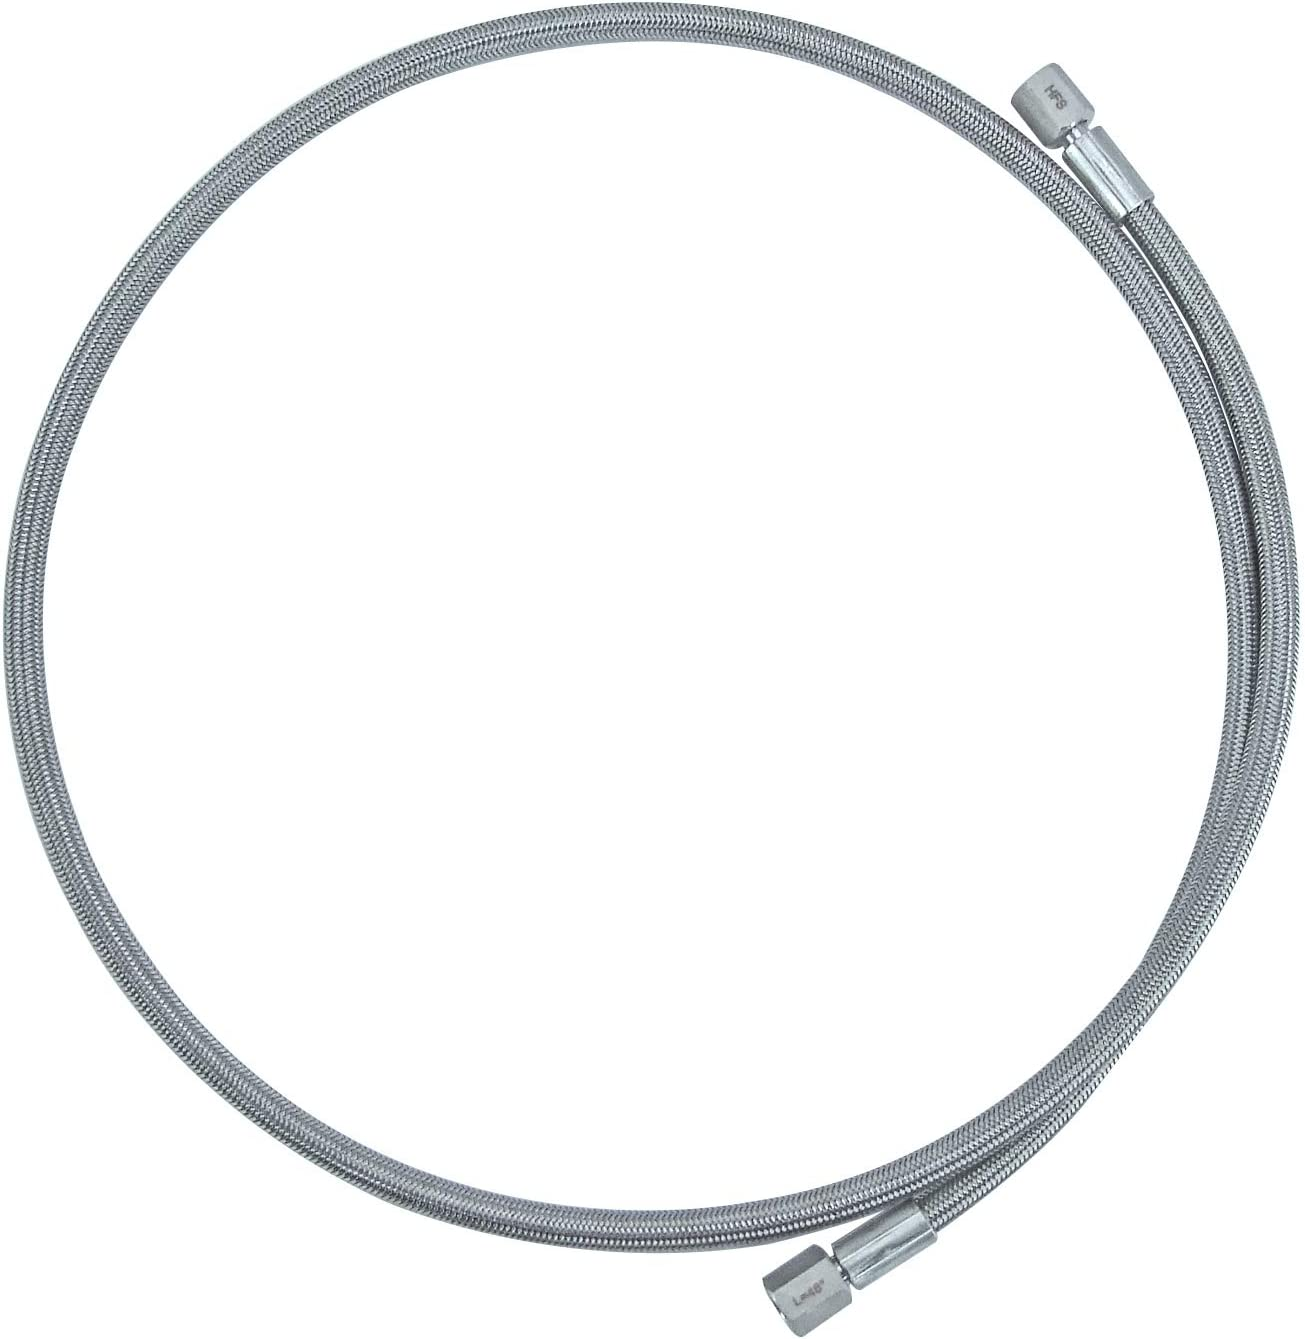 96 HFS Stainless Steel Braided Hose R PTFE Lines JIC 1//2 Female